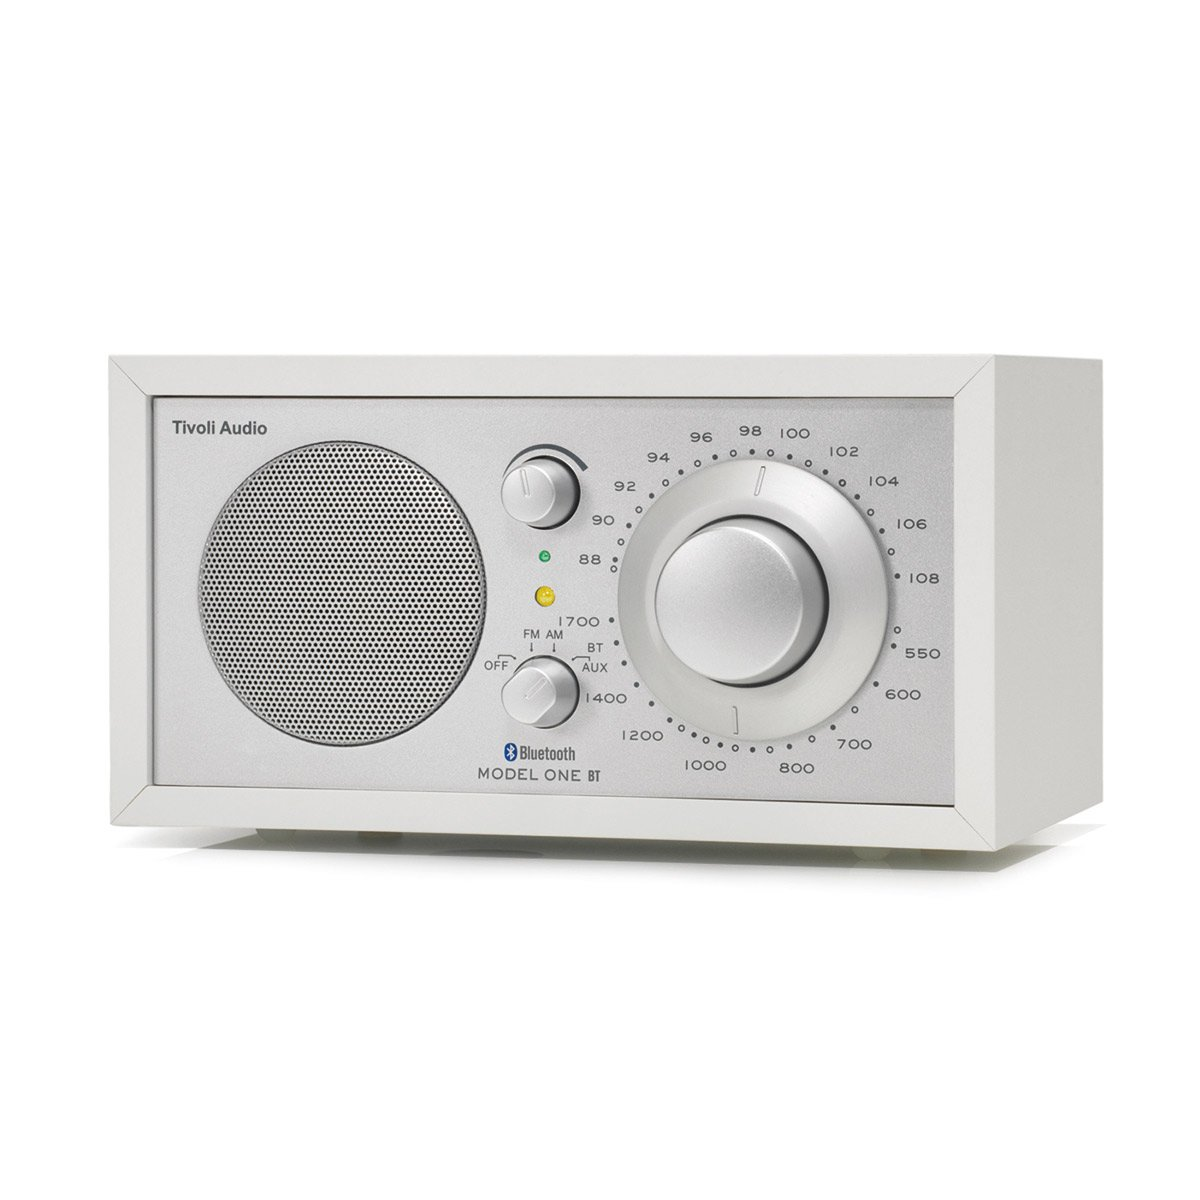 Tivoli Audio Model One BT Radio am/fm avec fonction Bluetooth Blanc/argenté